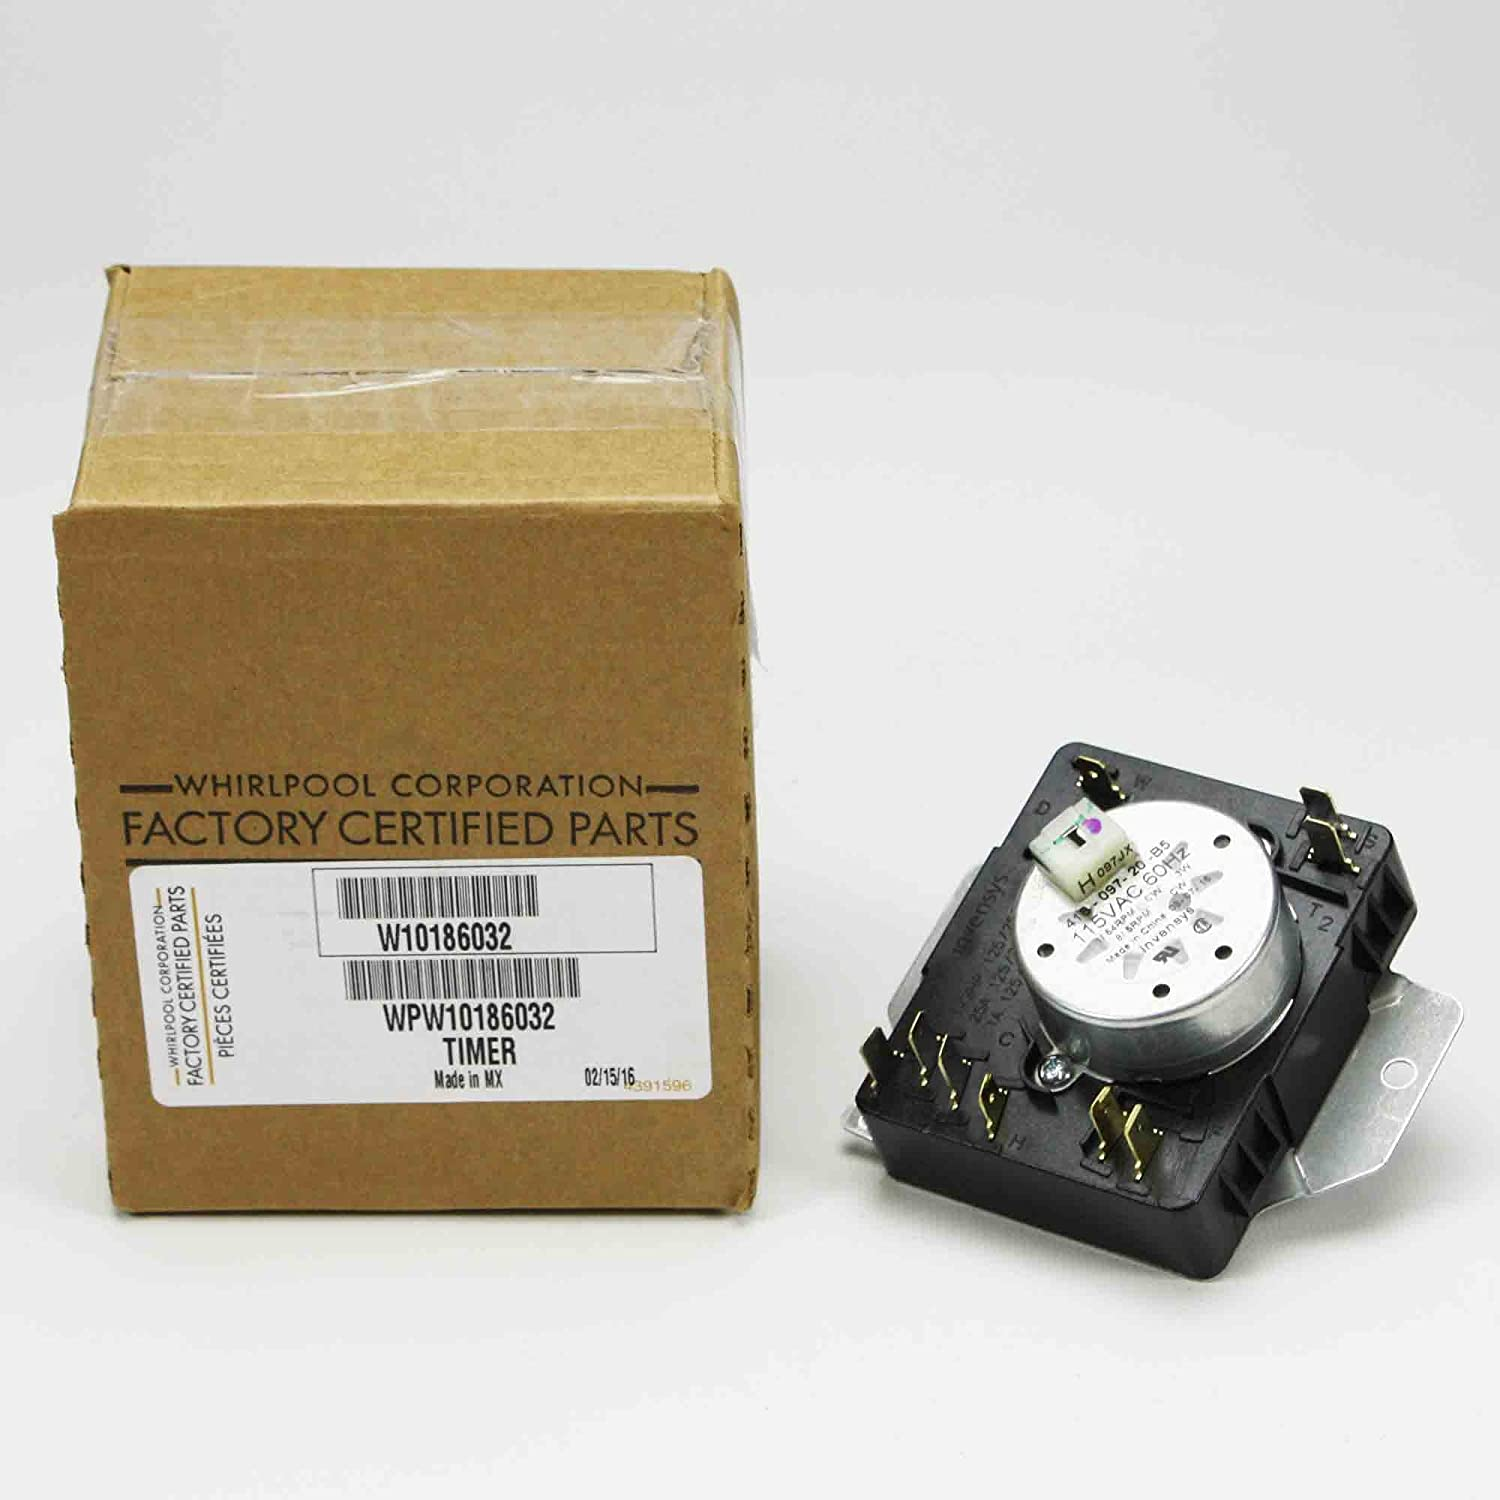 Whirlpool WPW10186032 Timer